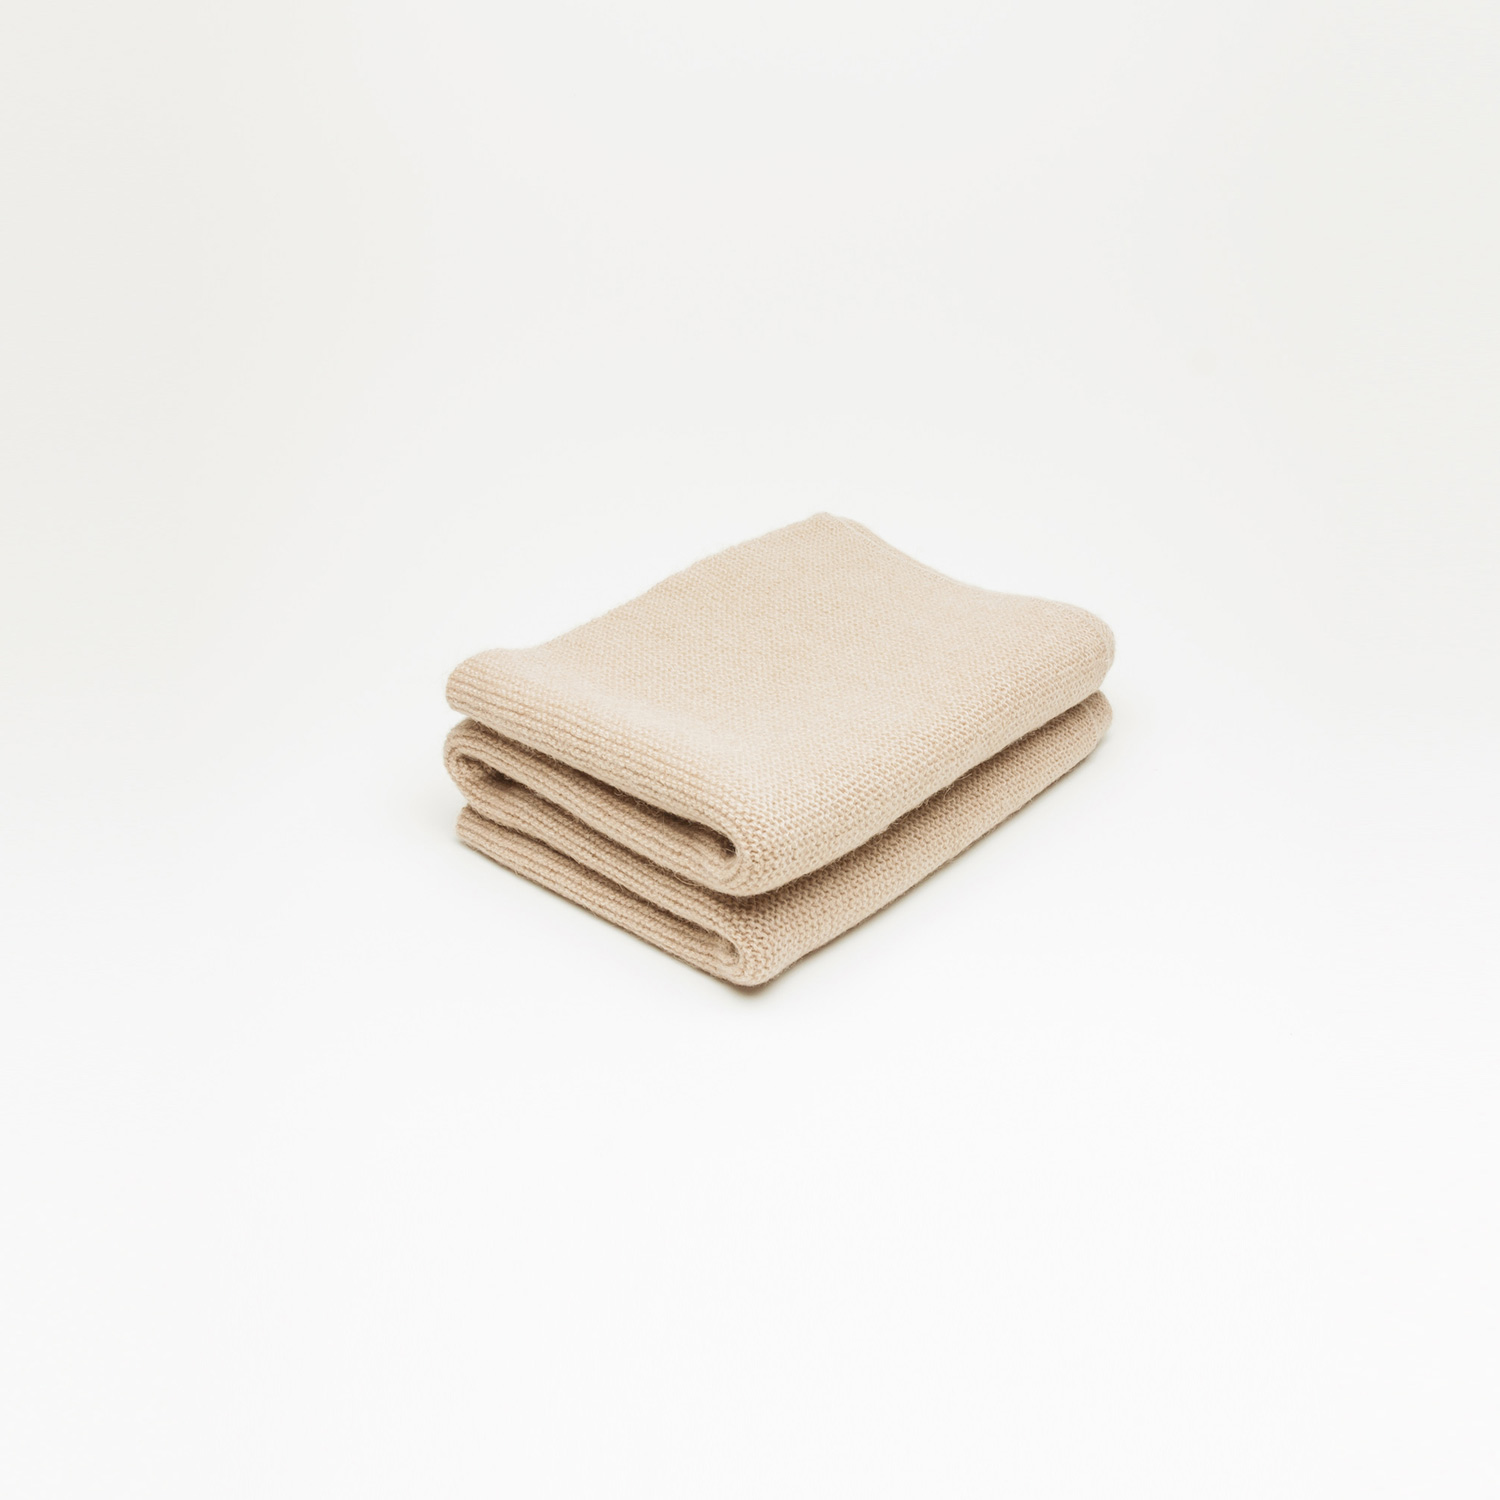 The Camel Hair Baby Blanket by Rimma Tchilingarian, Kamelhaar, Babydecke